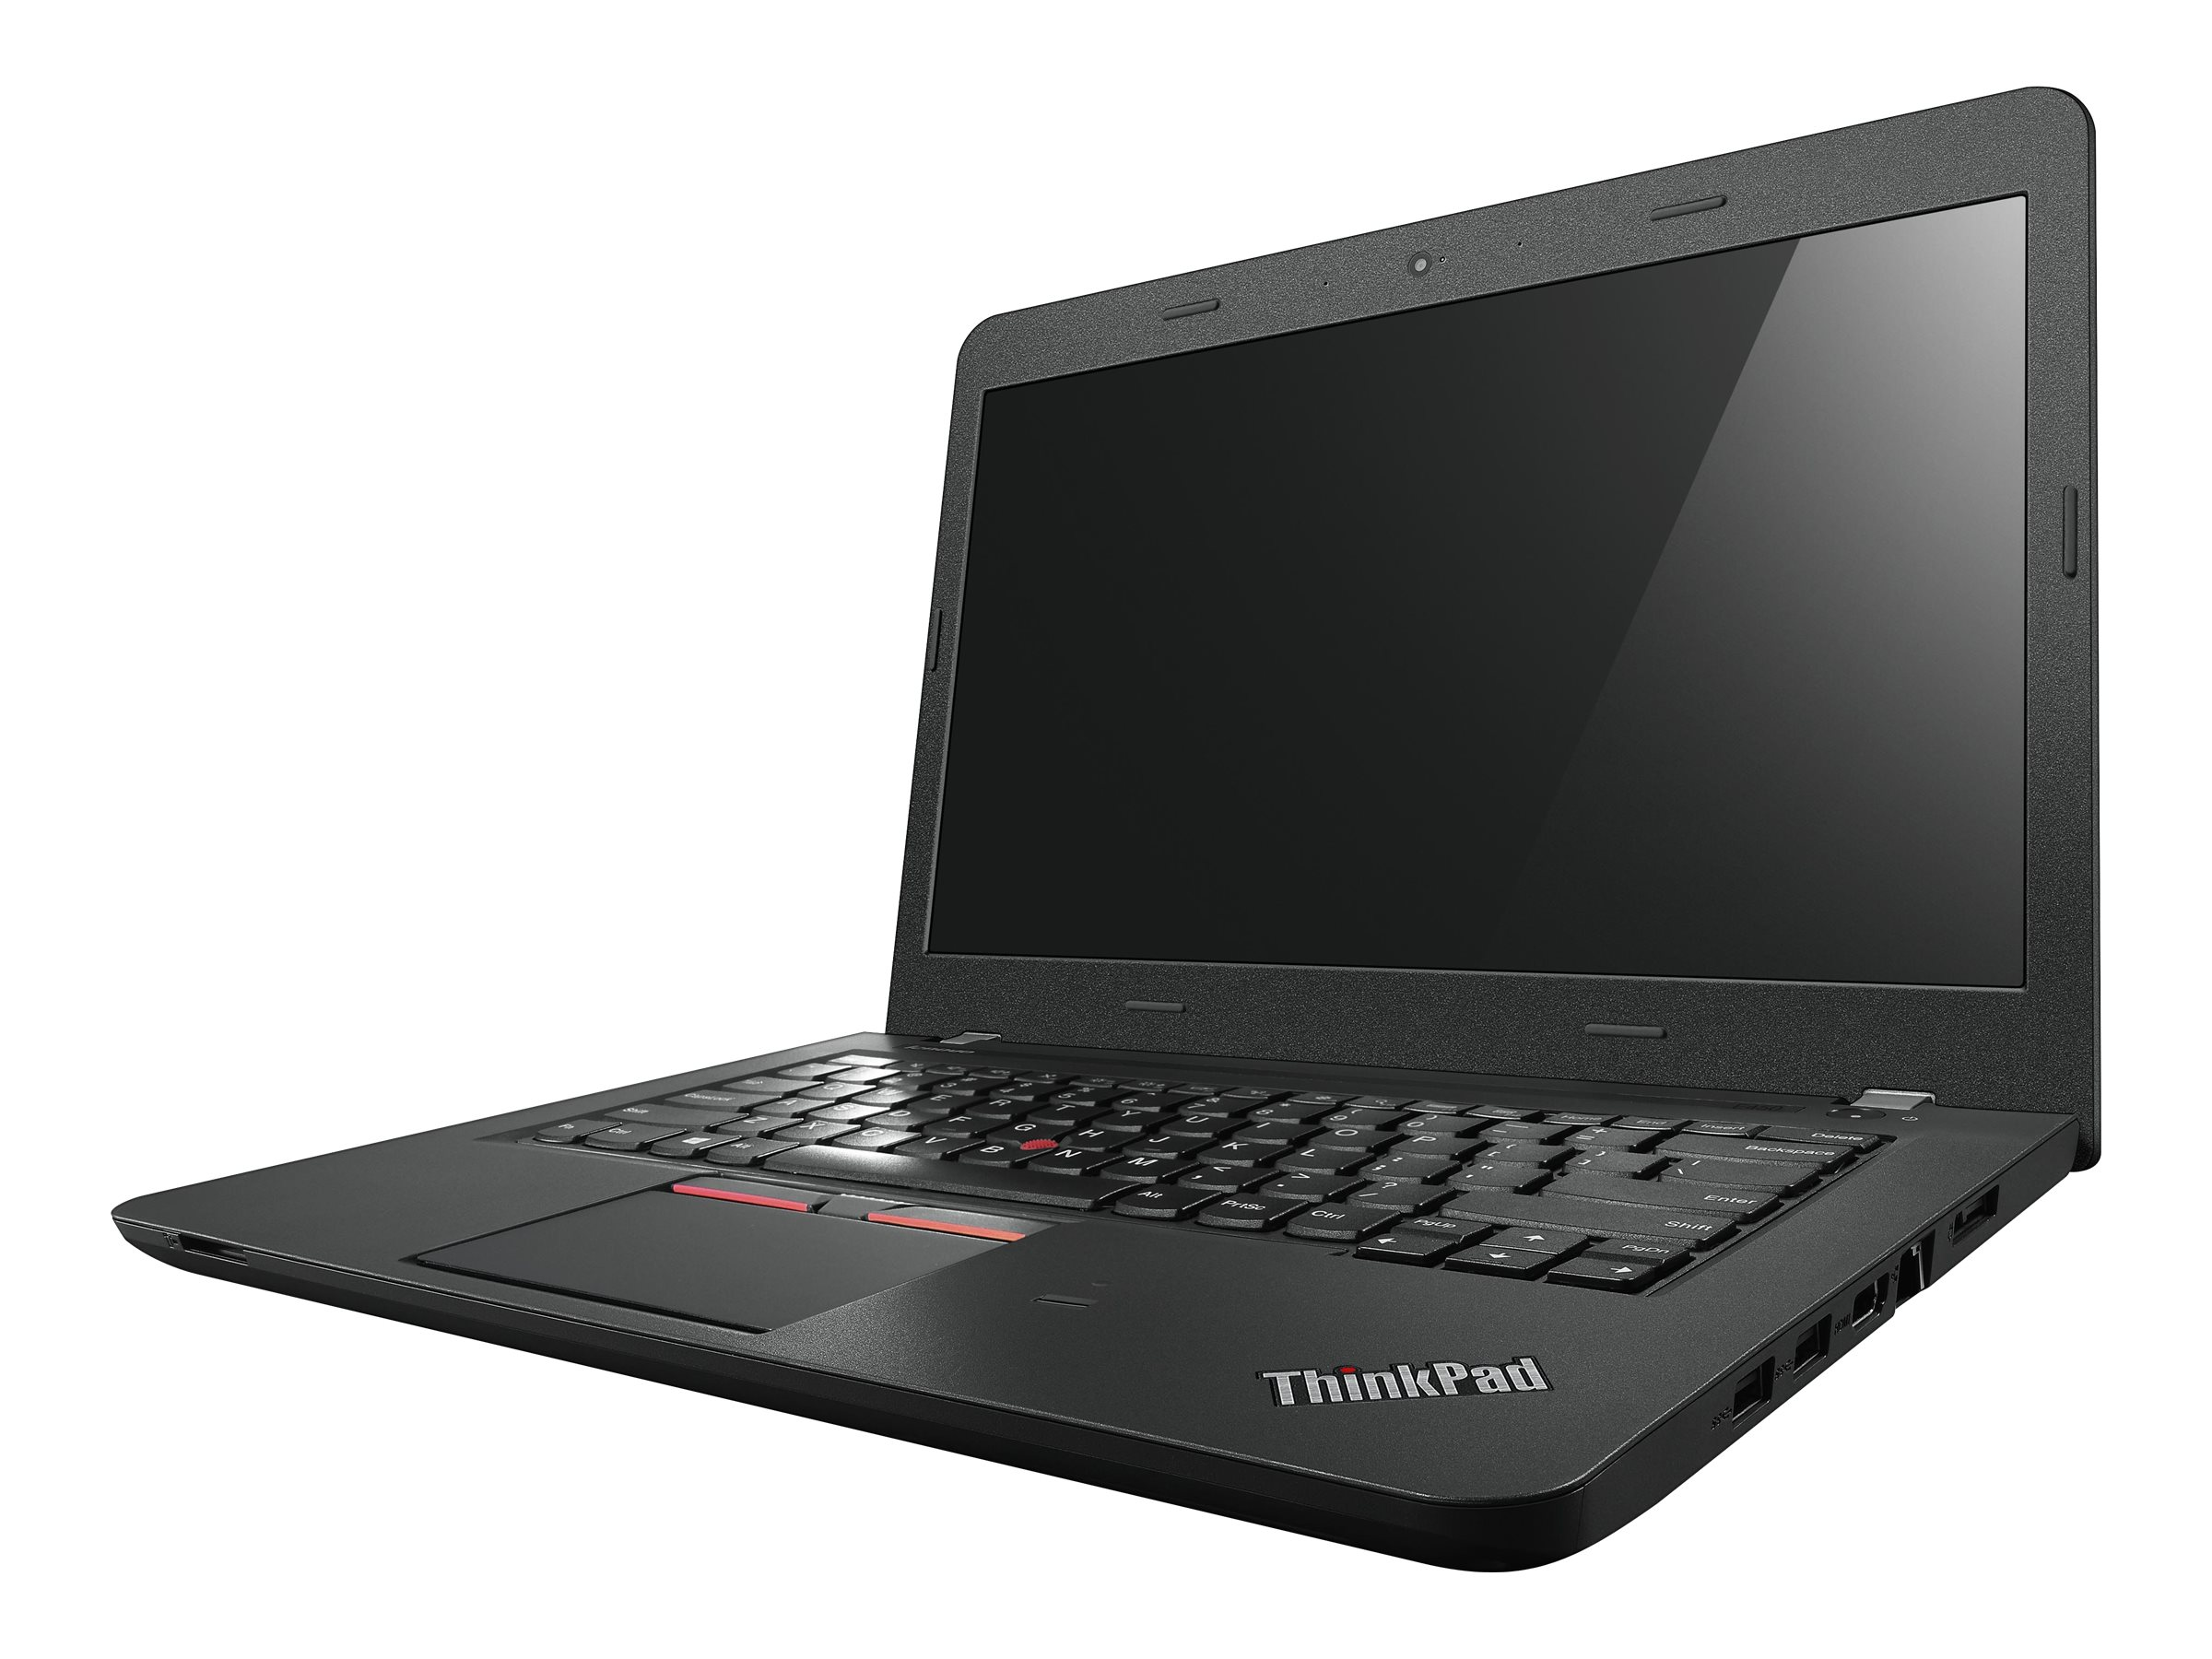 Lenovo TopSeller ThinkPad E450 2.0GHz Core i3 14in display